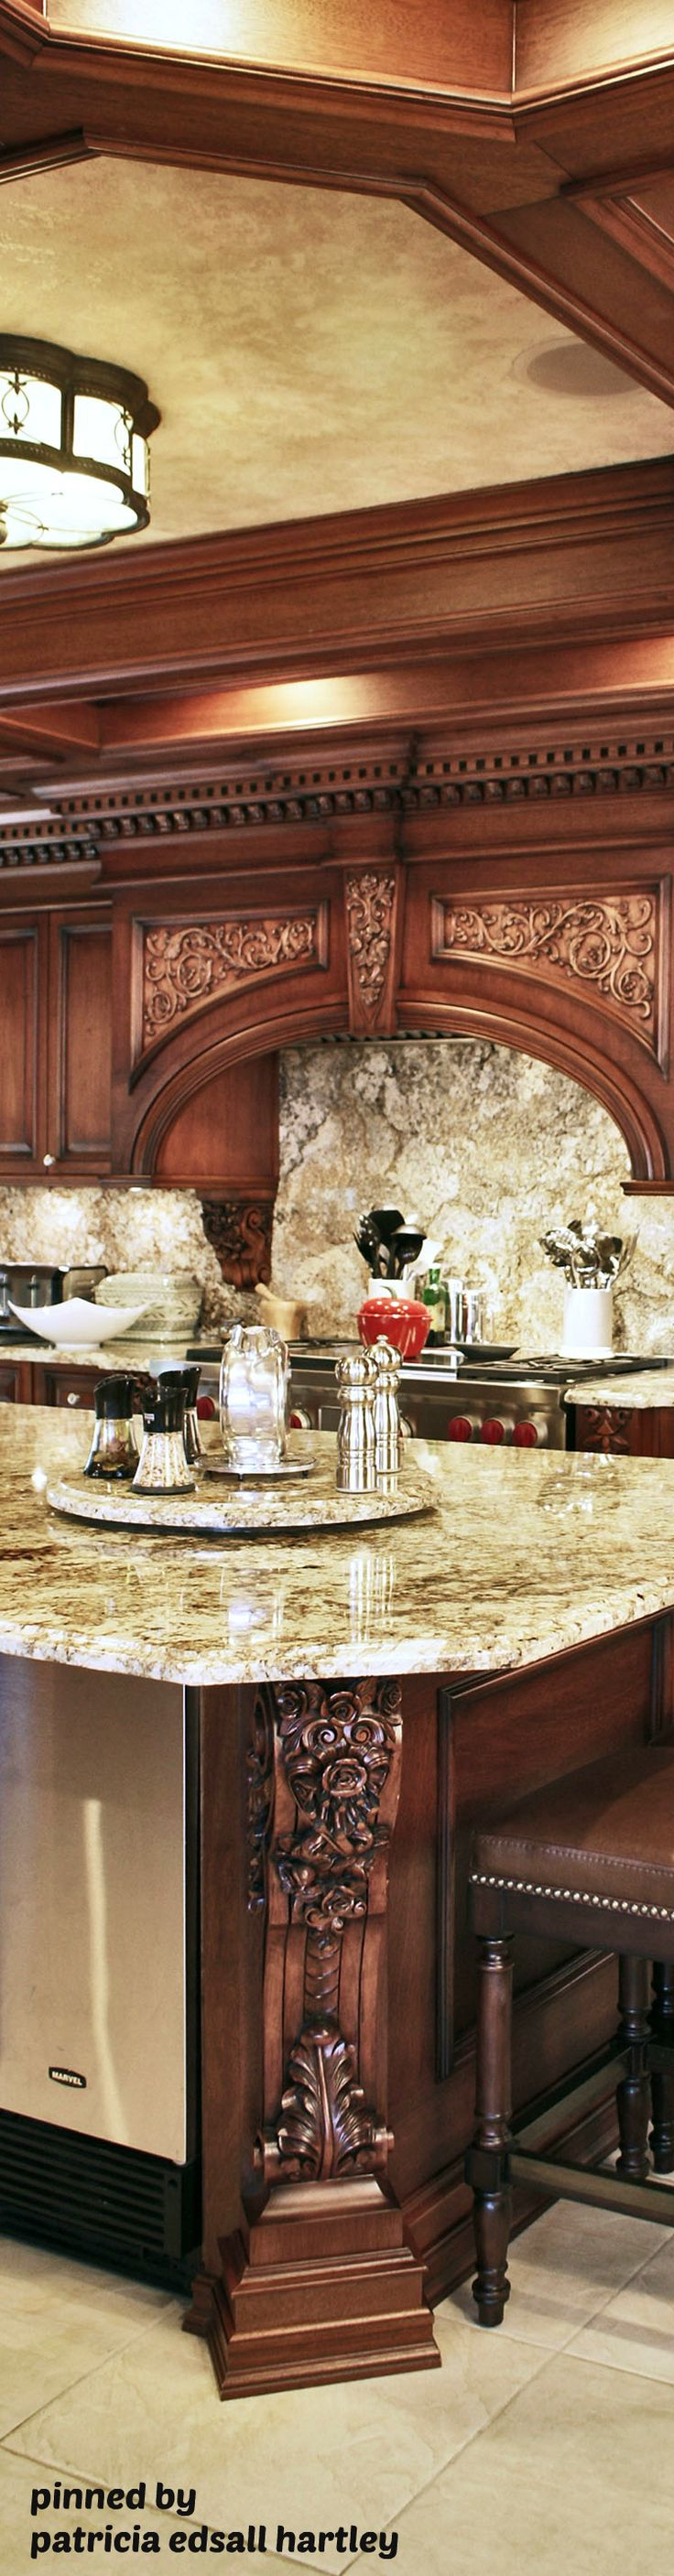 Best 25 tuscan kitchens ideas on pinterest tuscan kitchen colors tuscany kitchen and kitchen Old world tuscan kitchen designs